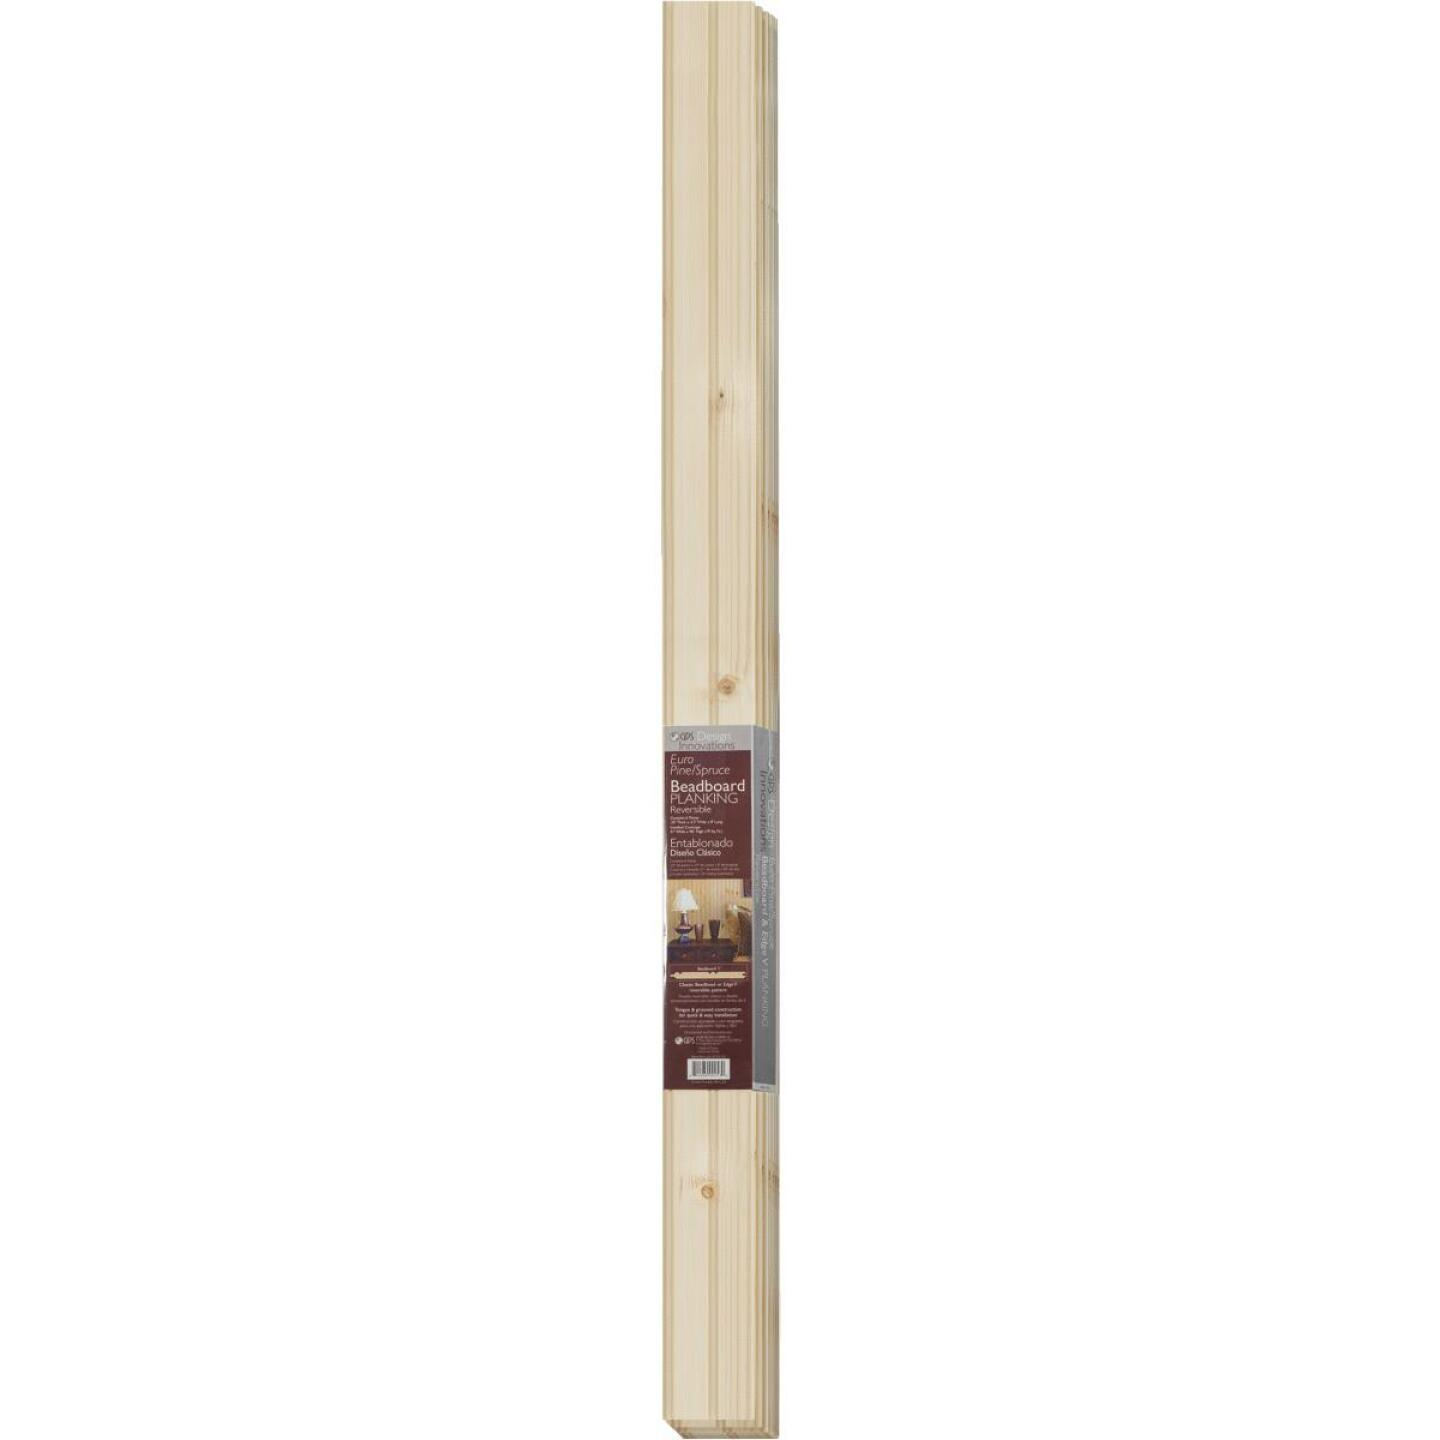 Global Product Sourcing 3-1/2 In. W. x 8 Ft. L. x 1/4 In. Thick Knotty Pine Reversible Profile Wall Plank (6-Pack) Image 2